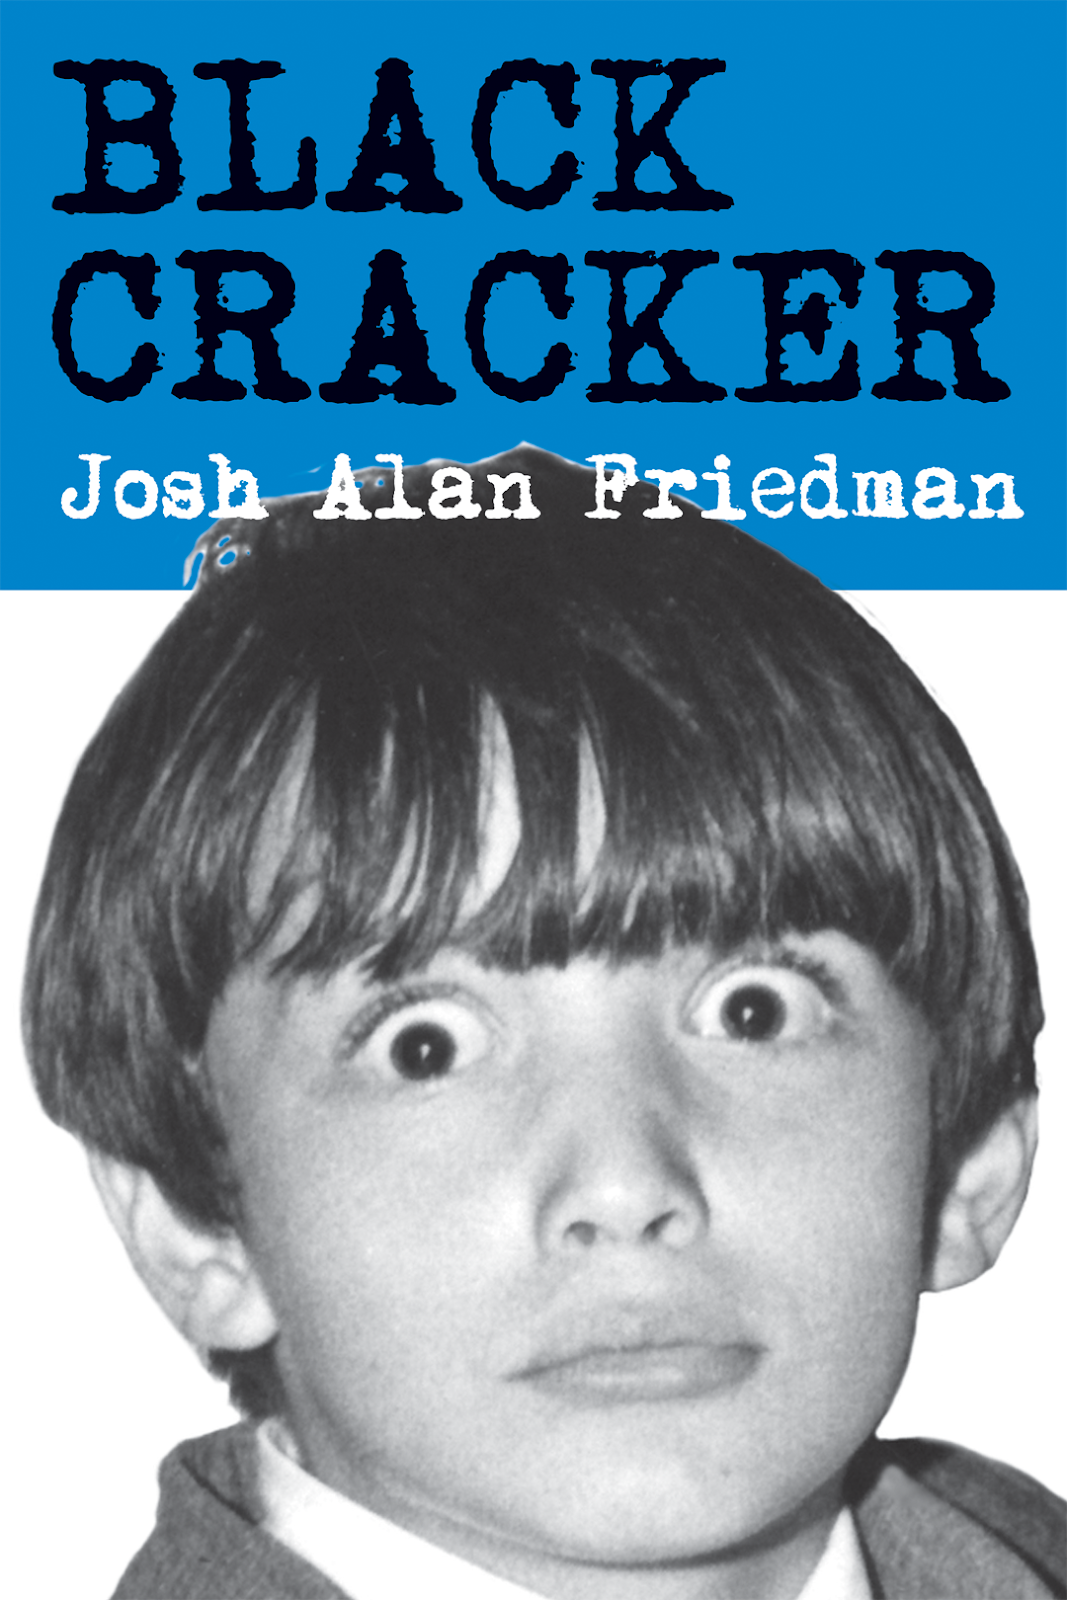 BLACK CRACKER / Josh Alan Friedman